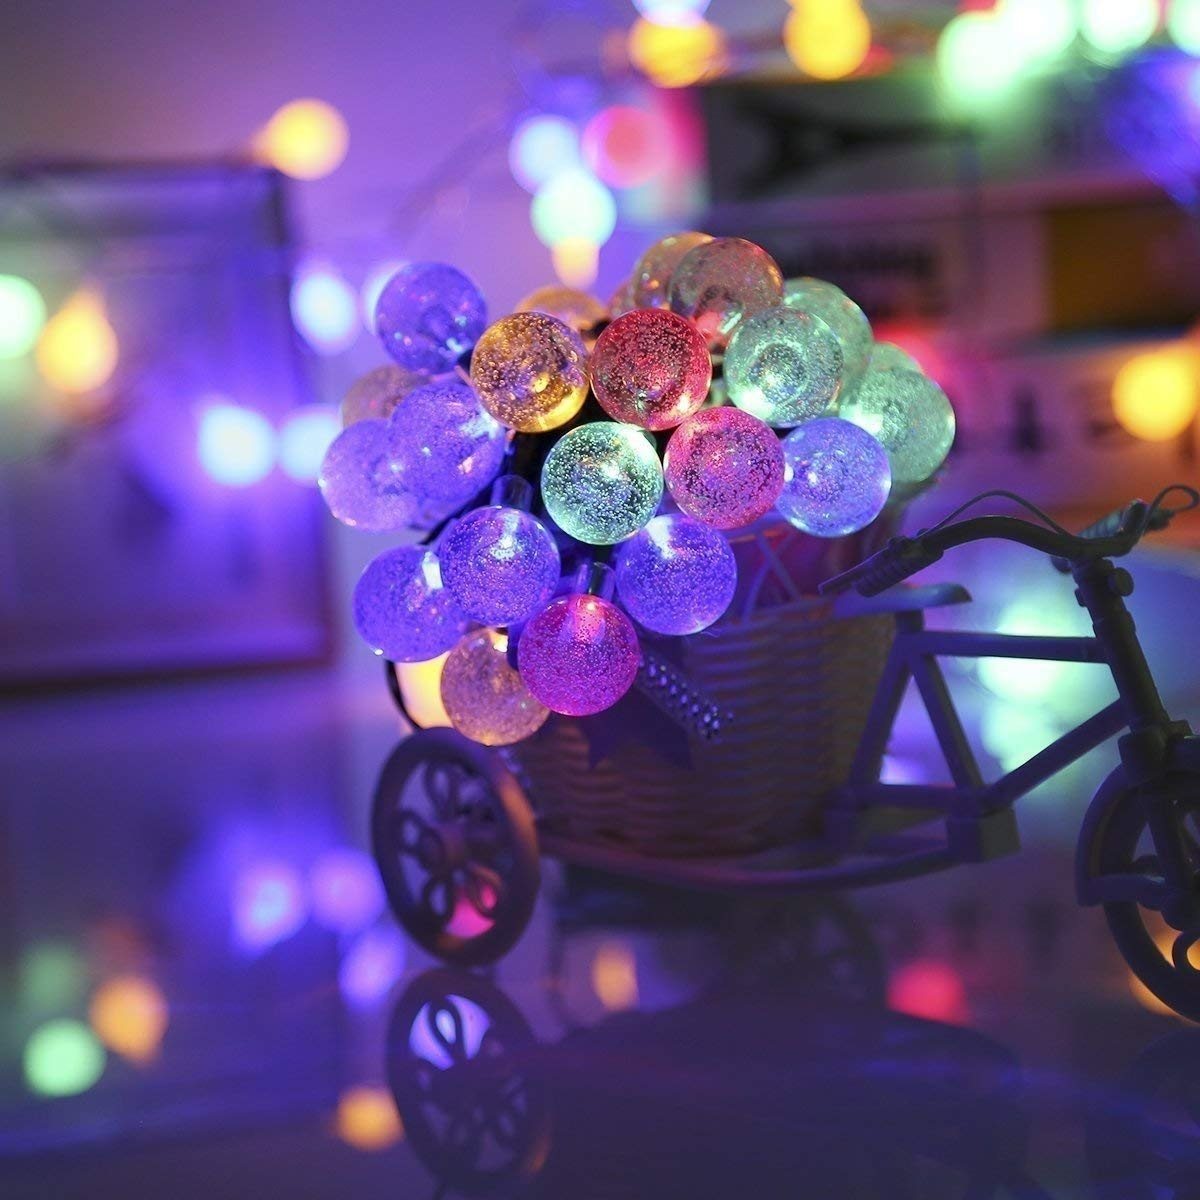 Solar String Lights Outdoor LED Waterproof Globe Solar Powered Fairy String Lights for Garden Patio Wedding Party Holiday Decoration (Warm White Crystal Ball)